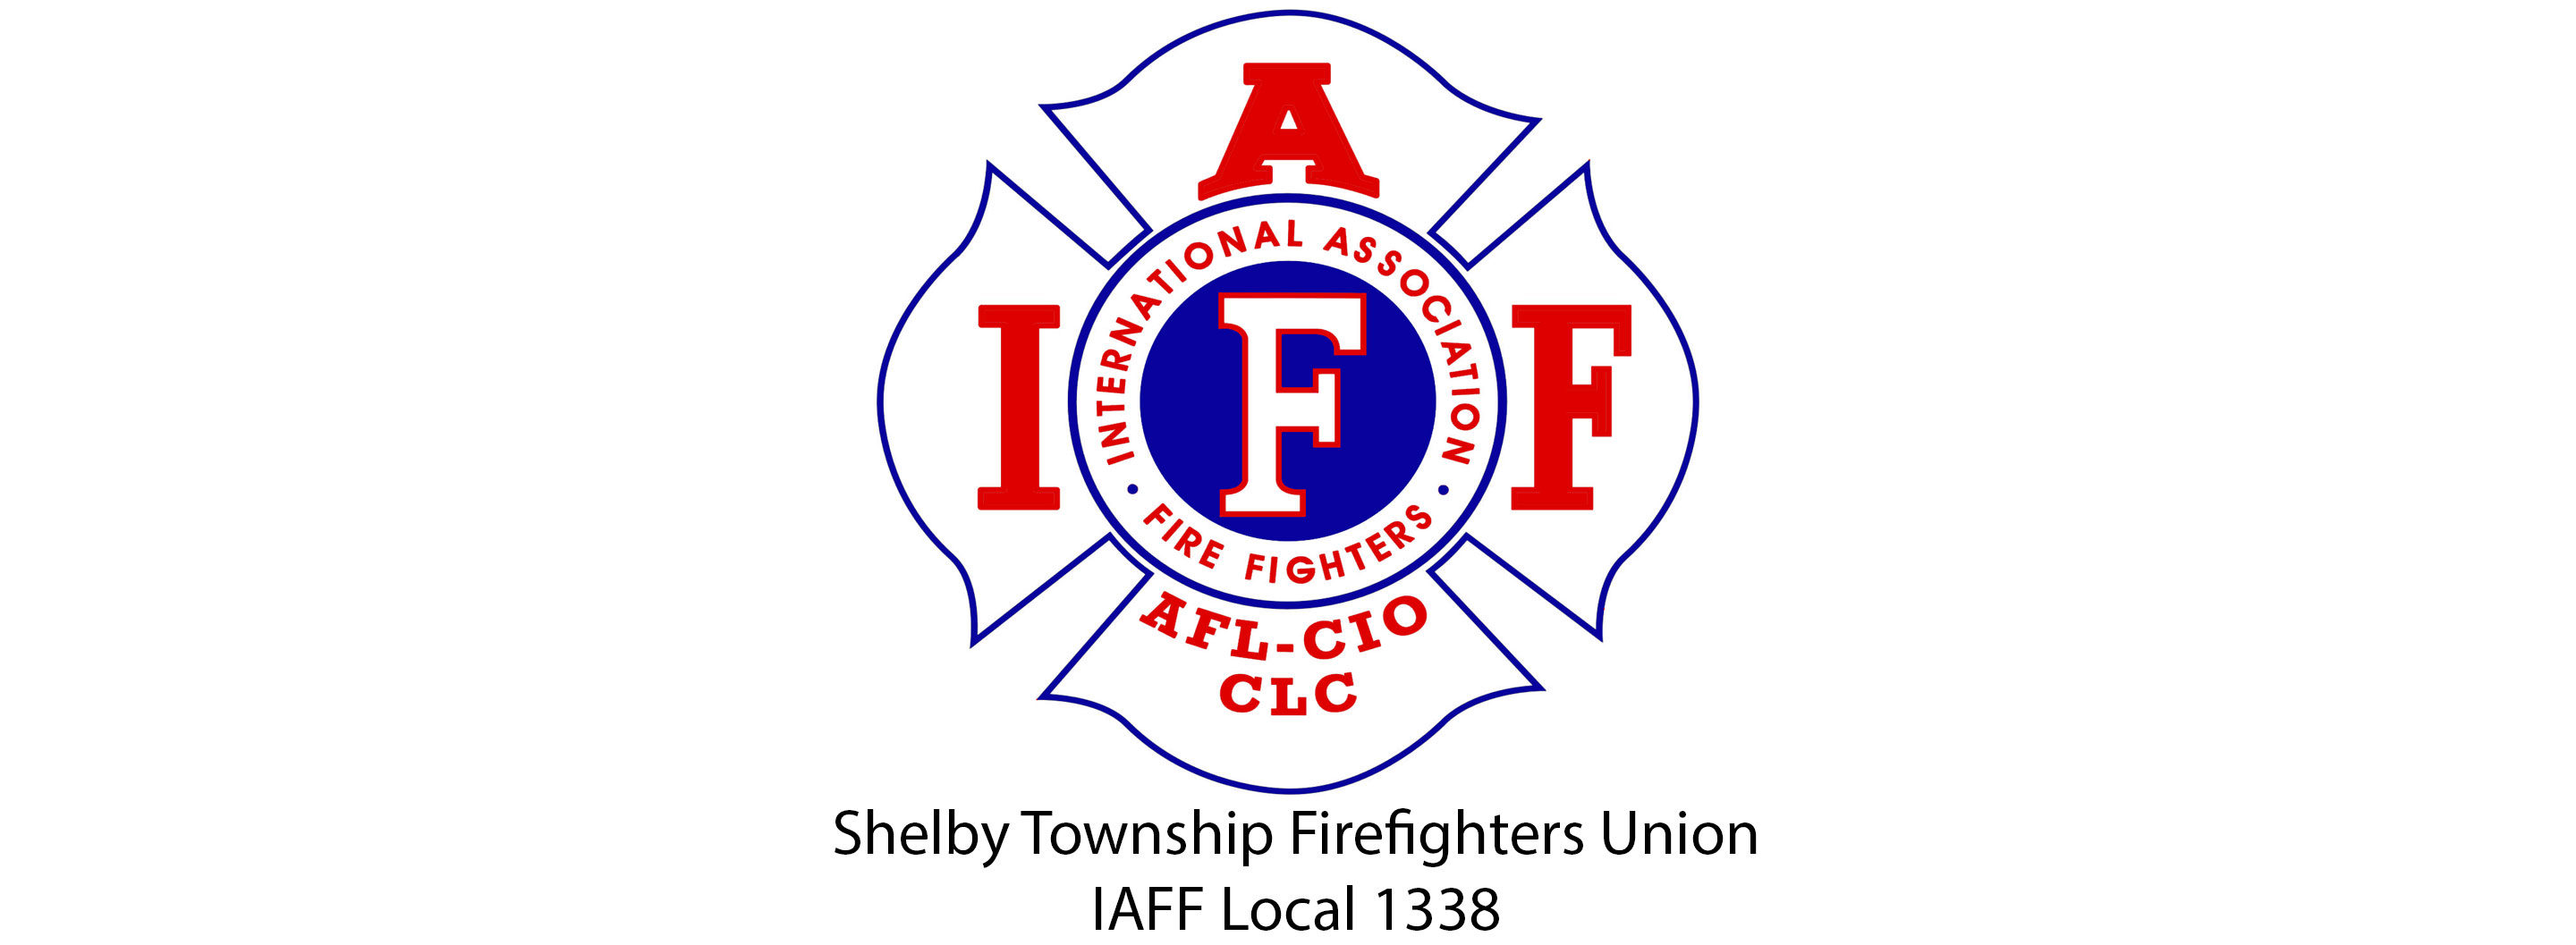 Shelby Twp Fire Fighters IAFF Local 1338